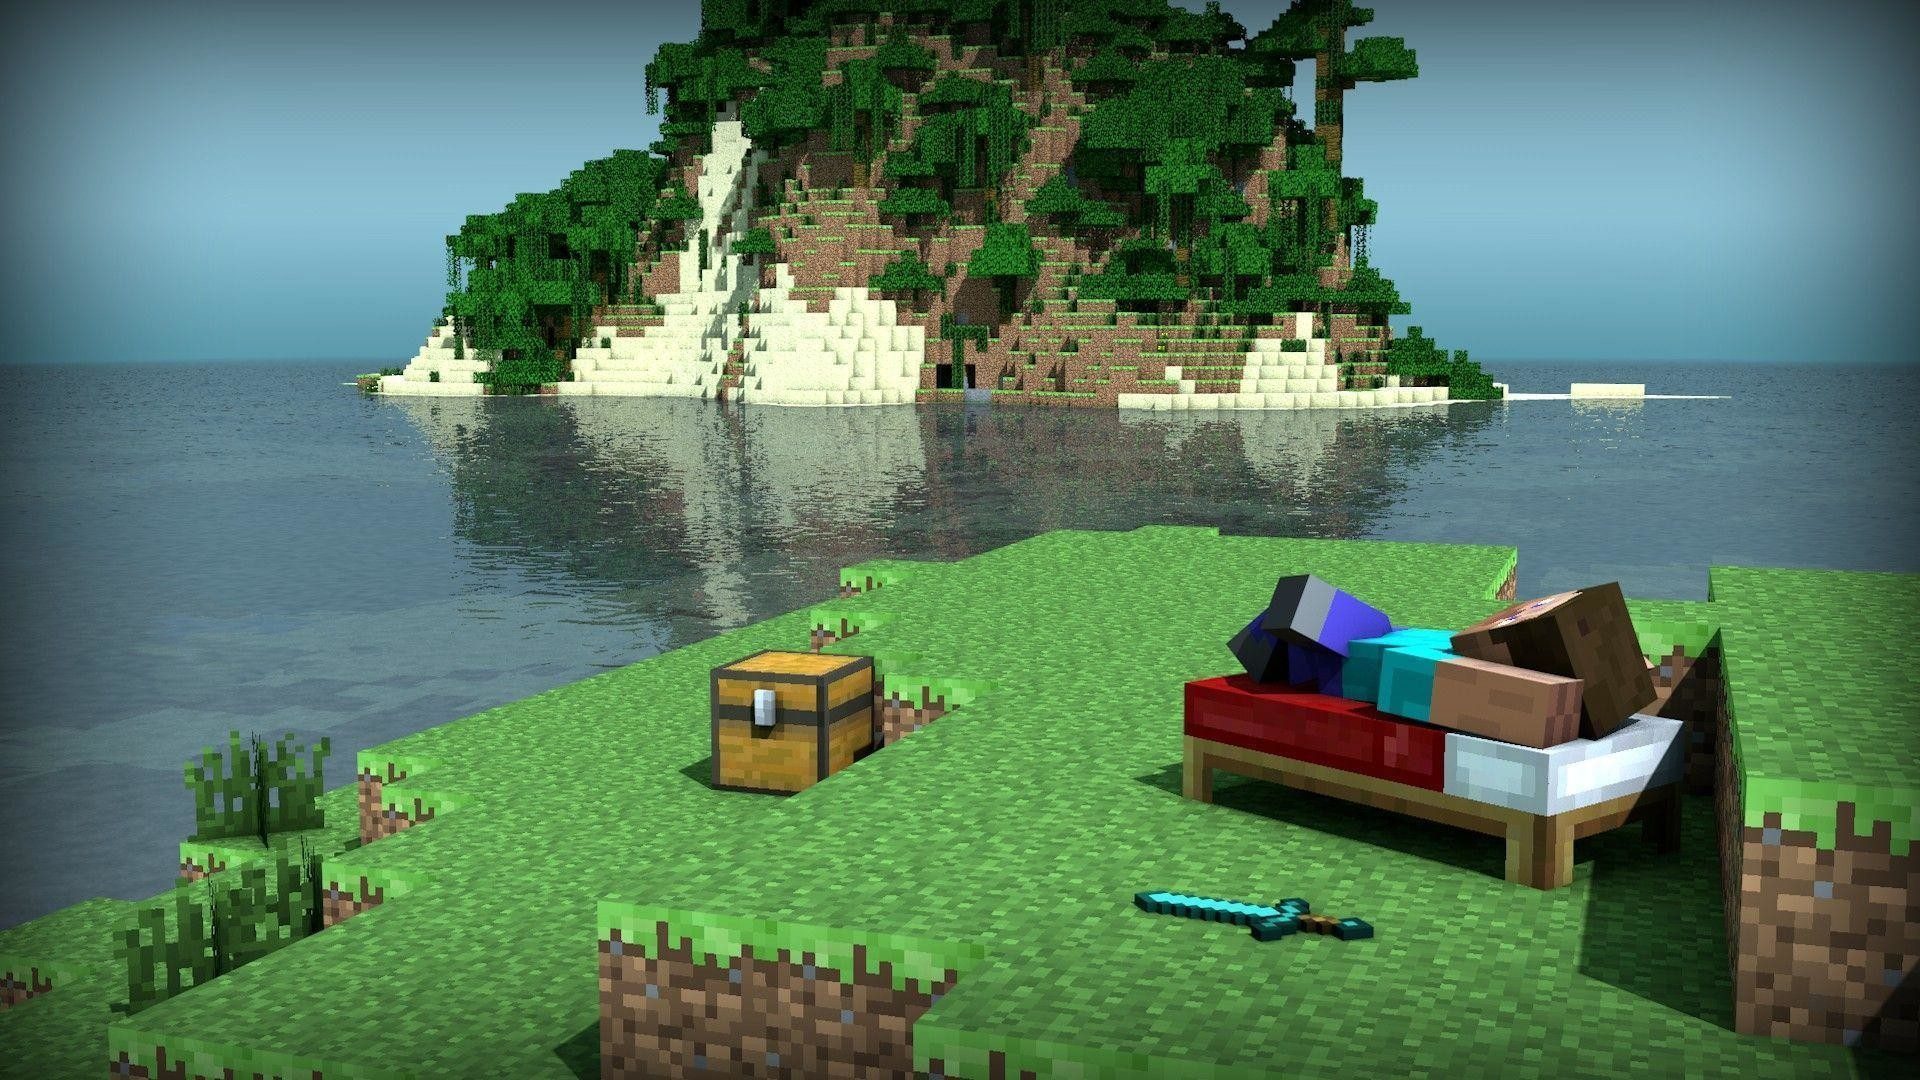 Wonderful Wallpaper Minecraft Aaron - 717974-top-minecraft-wallpaper-pictures-1920x1080-windows-10  Perfect Image Reference_908062.jpg